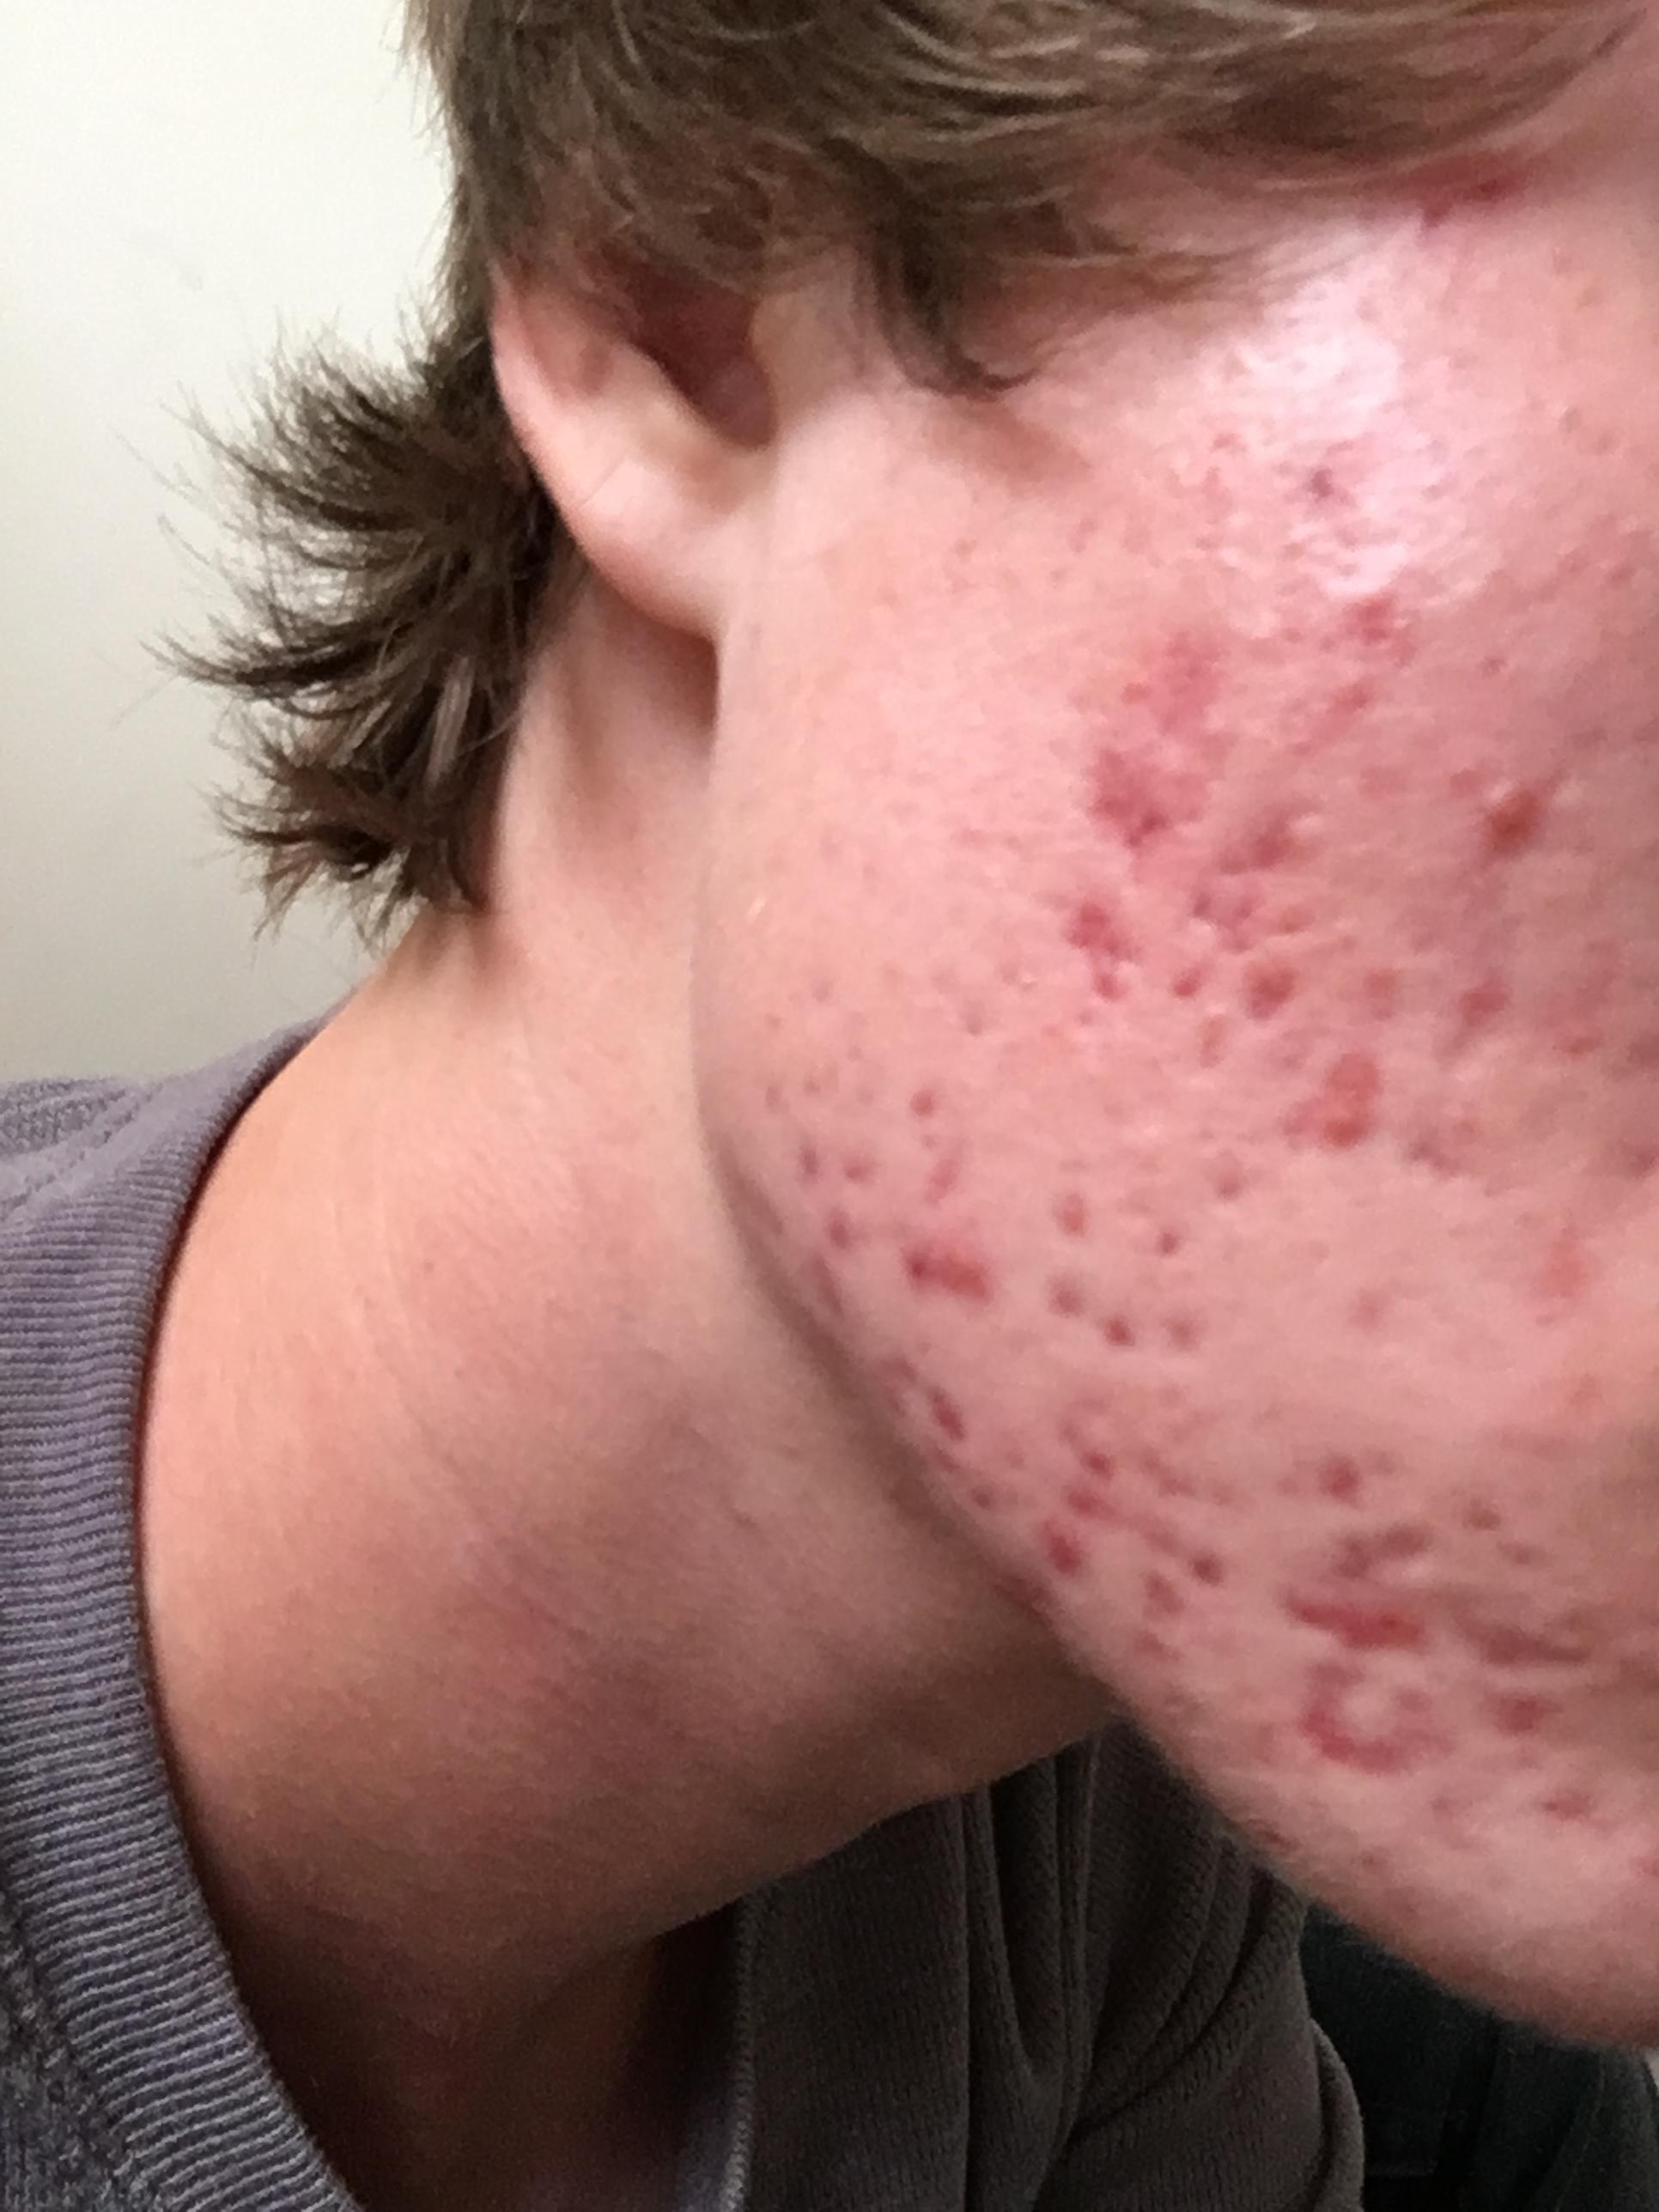 how severe is my acne, and what can be done to help it? - general